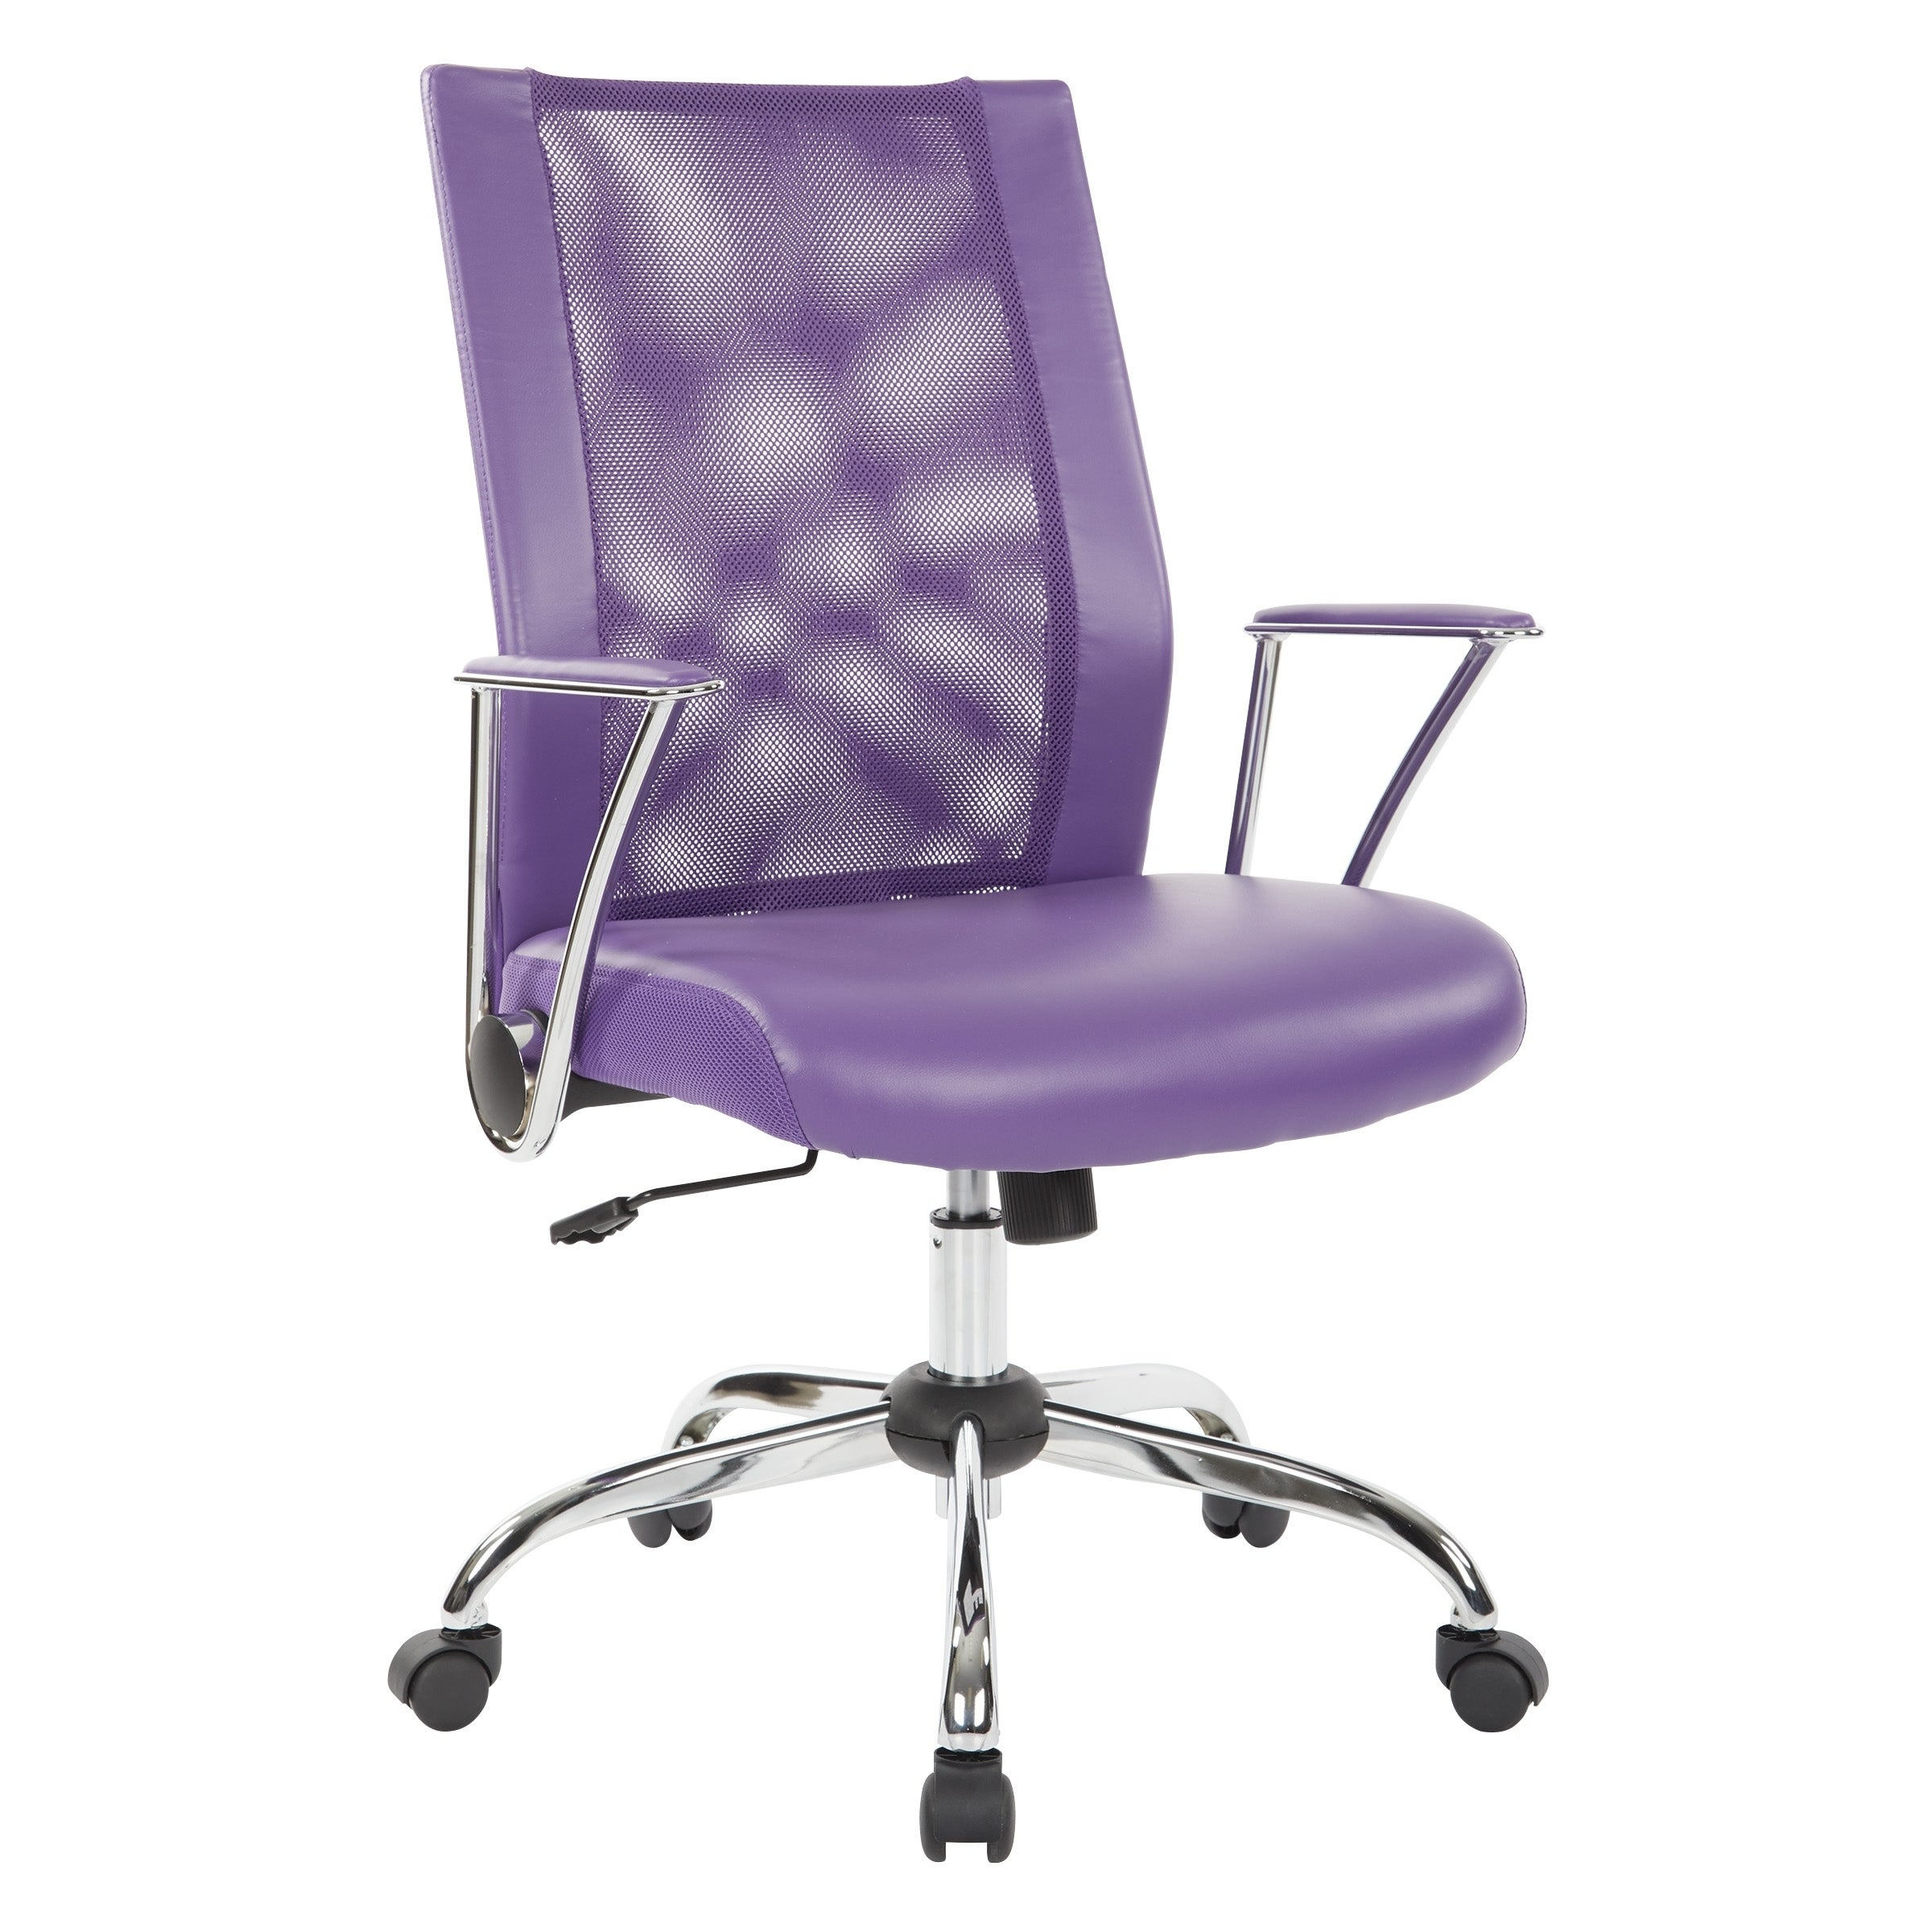 Purple Office Conference Room Chairs Online At Our Best Home Furniture Deals